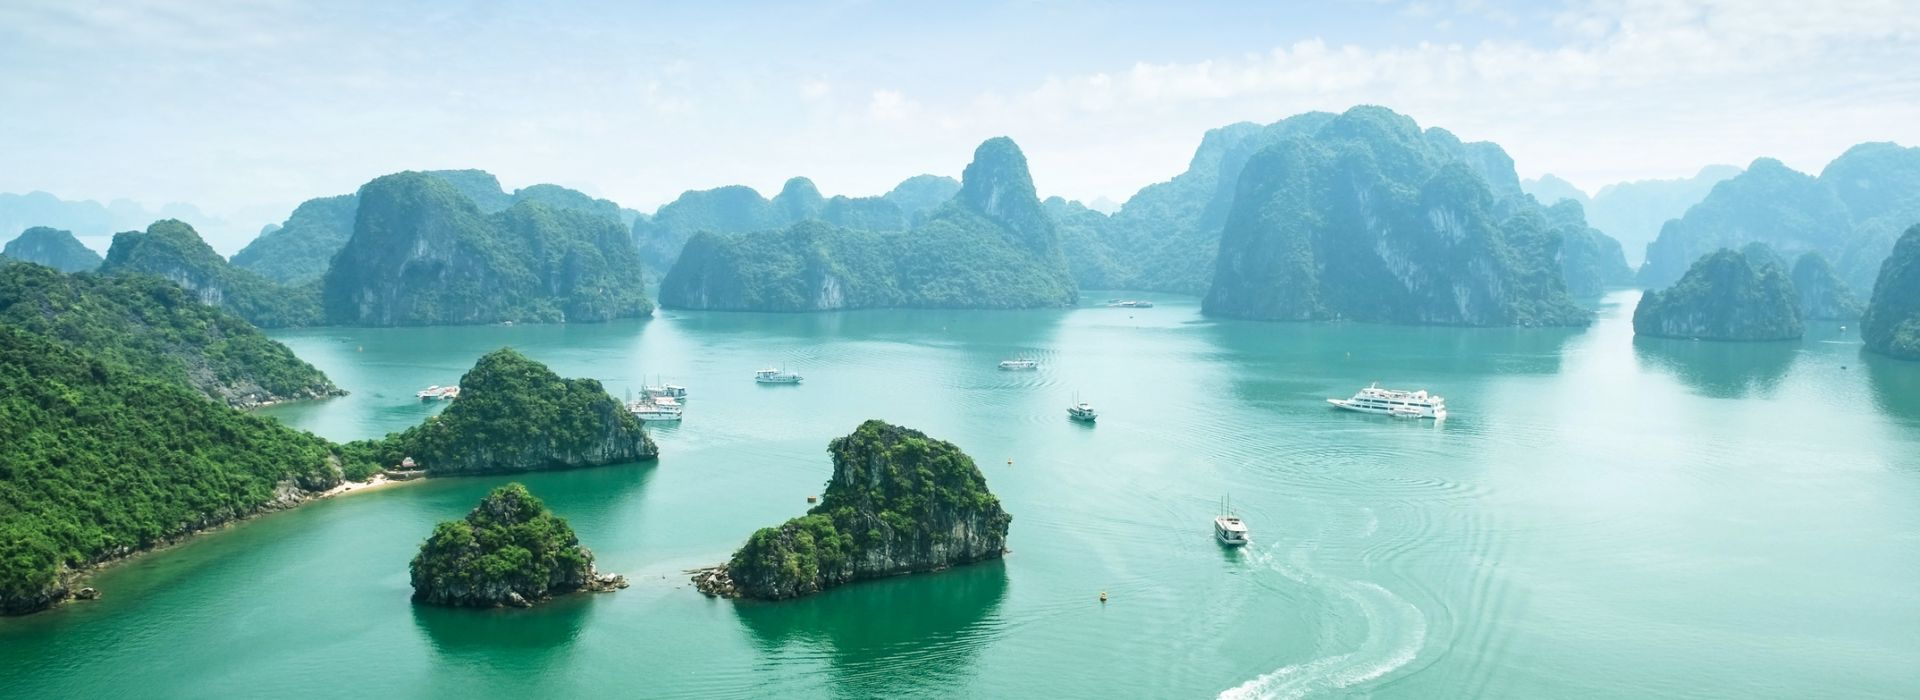 Sightseeing Tours in Halong Bay